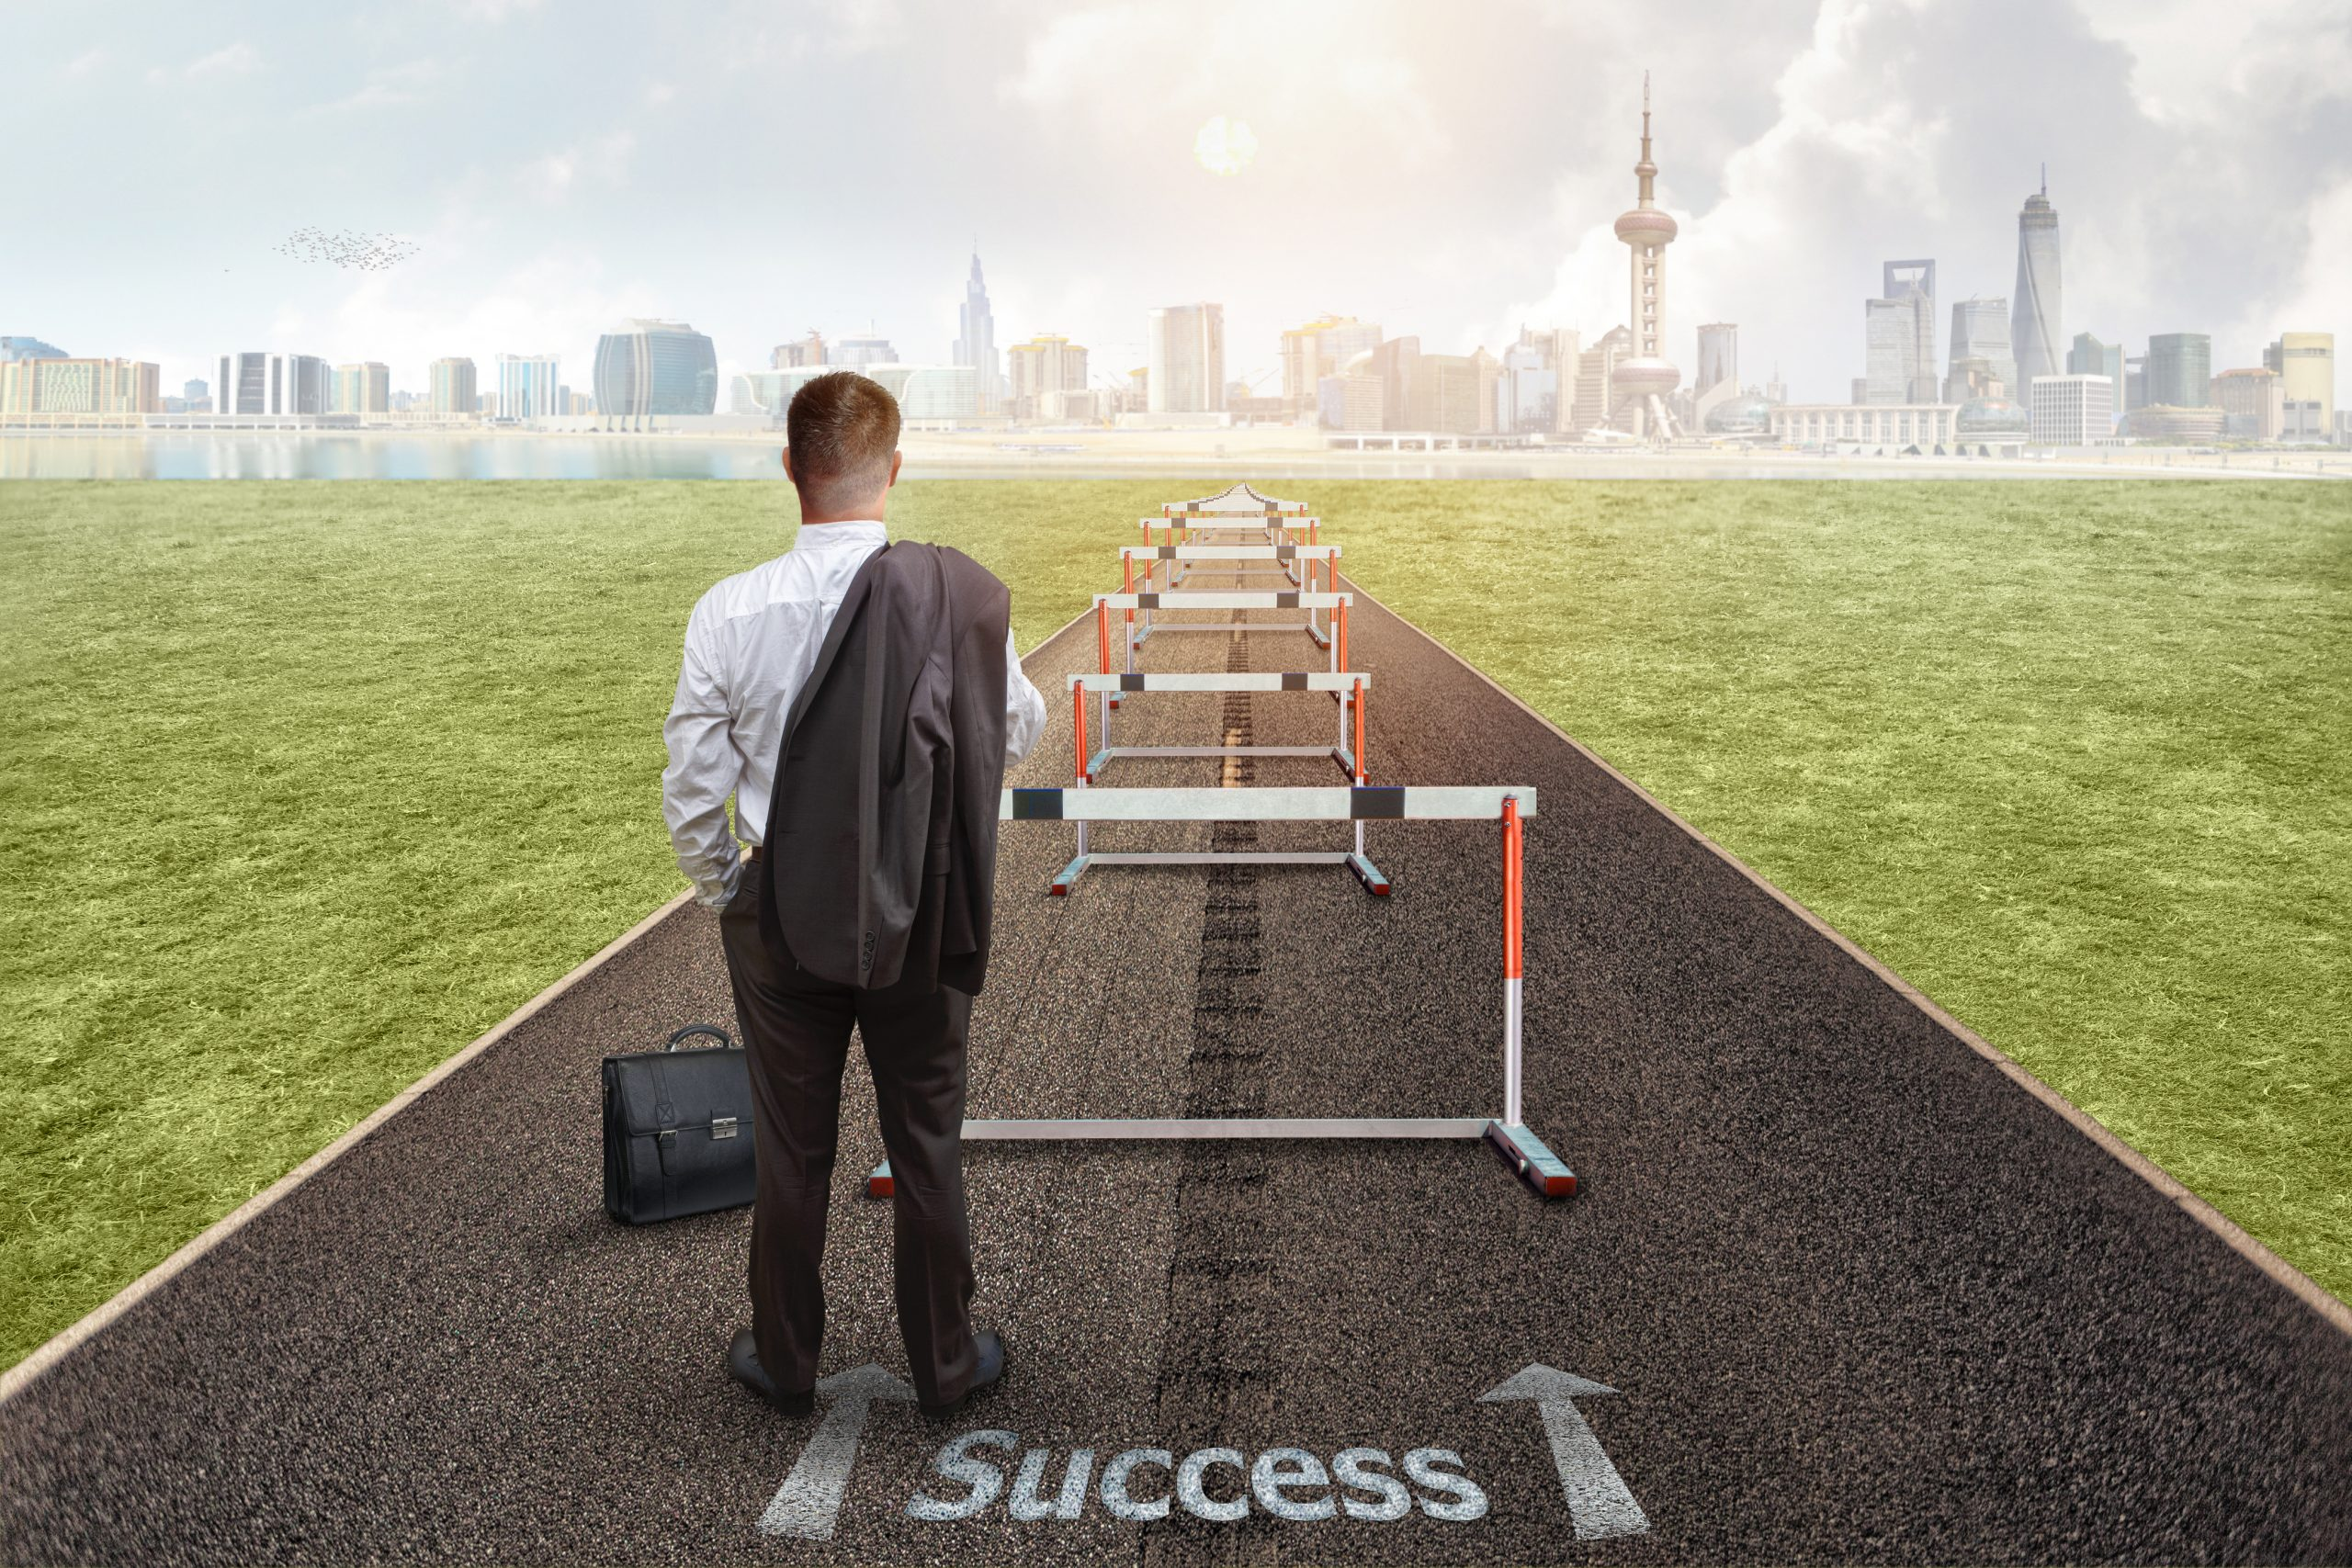 5 Biggest Obstacles to Build a Professional Practice